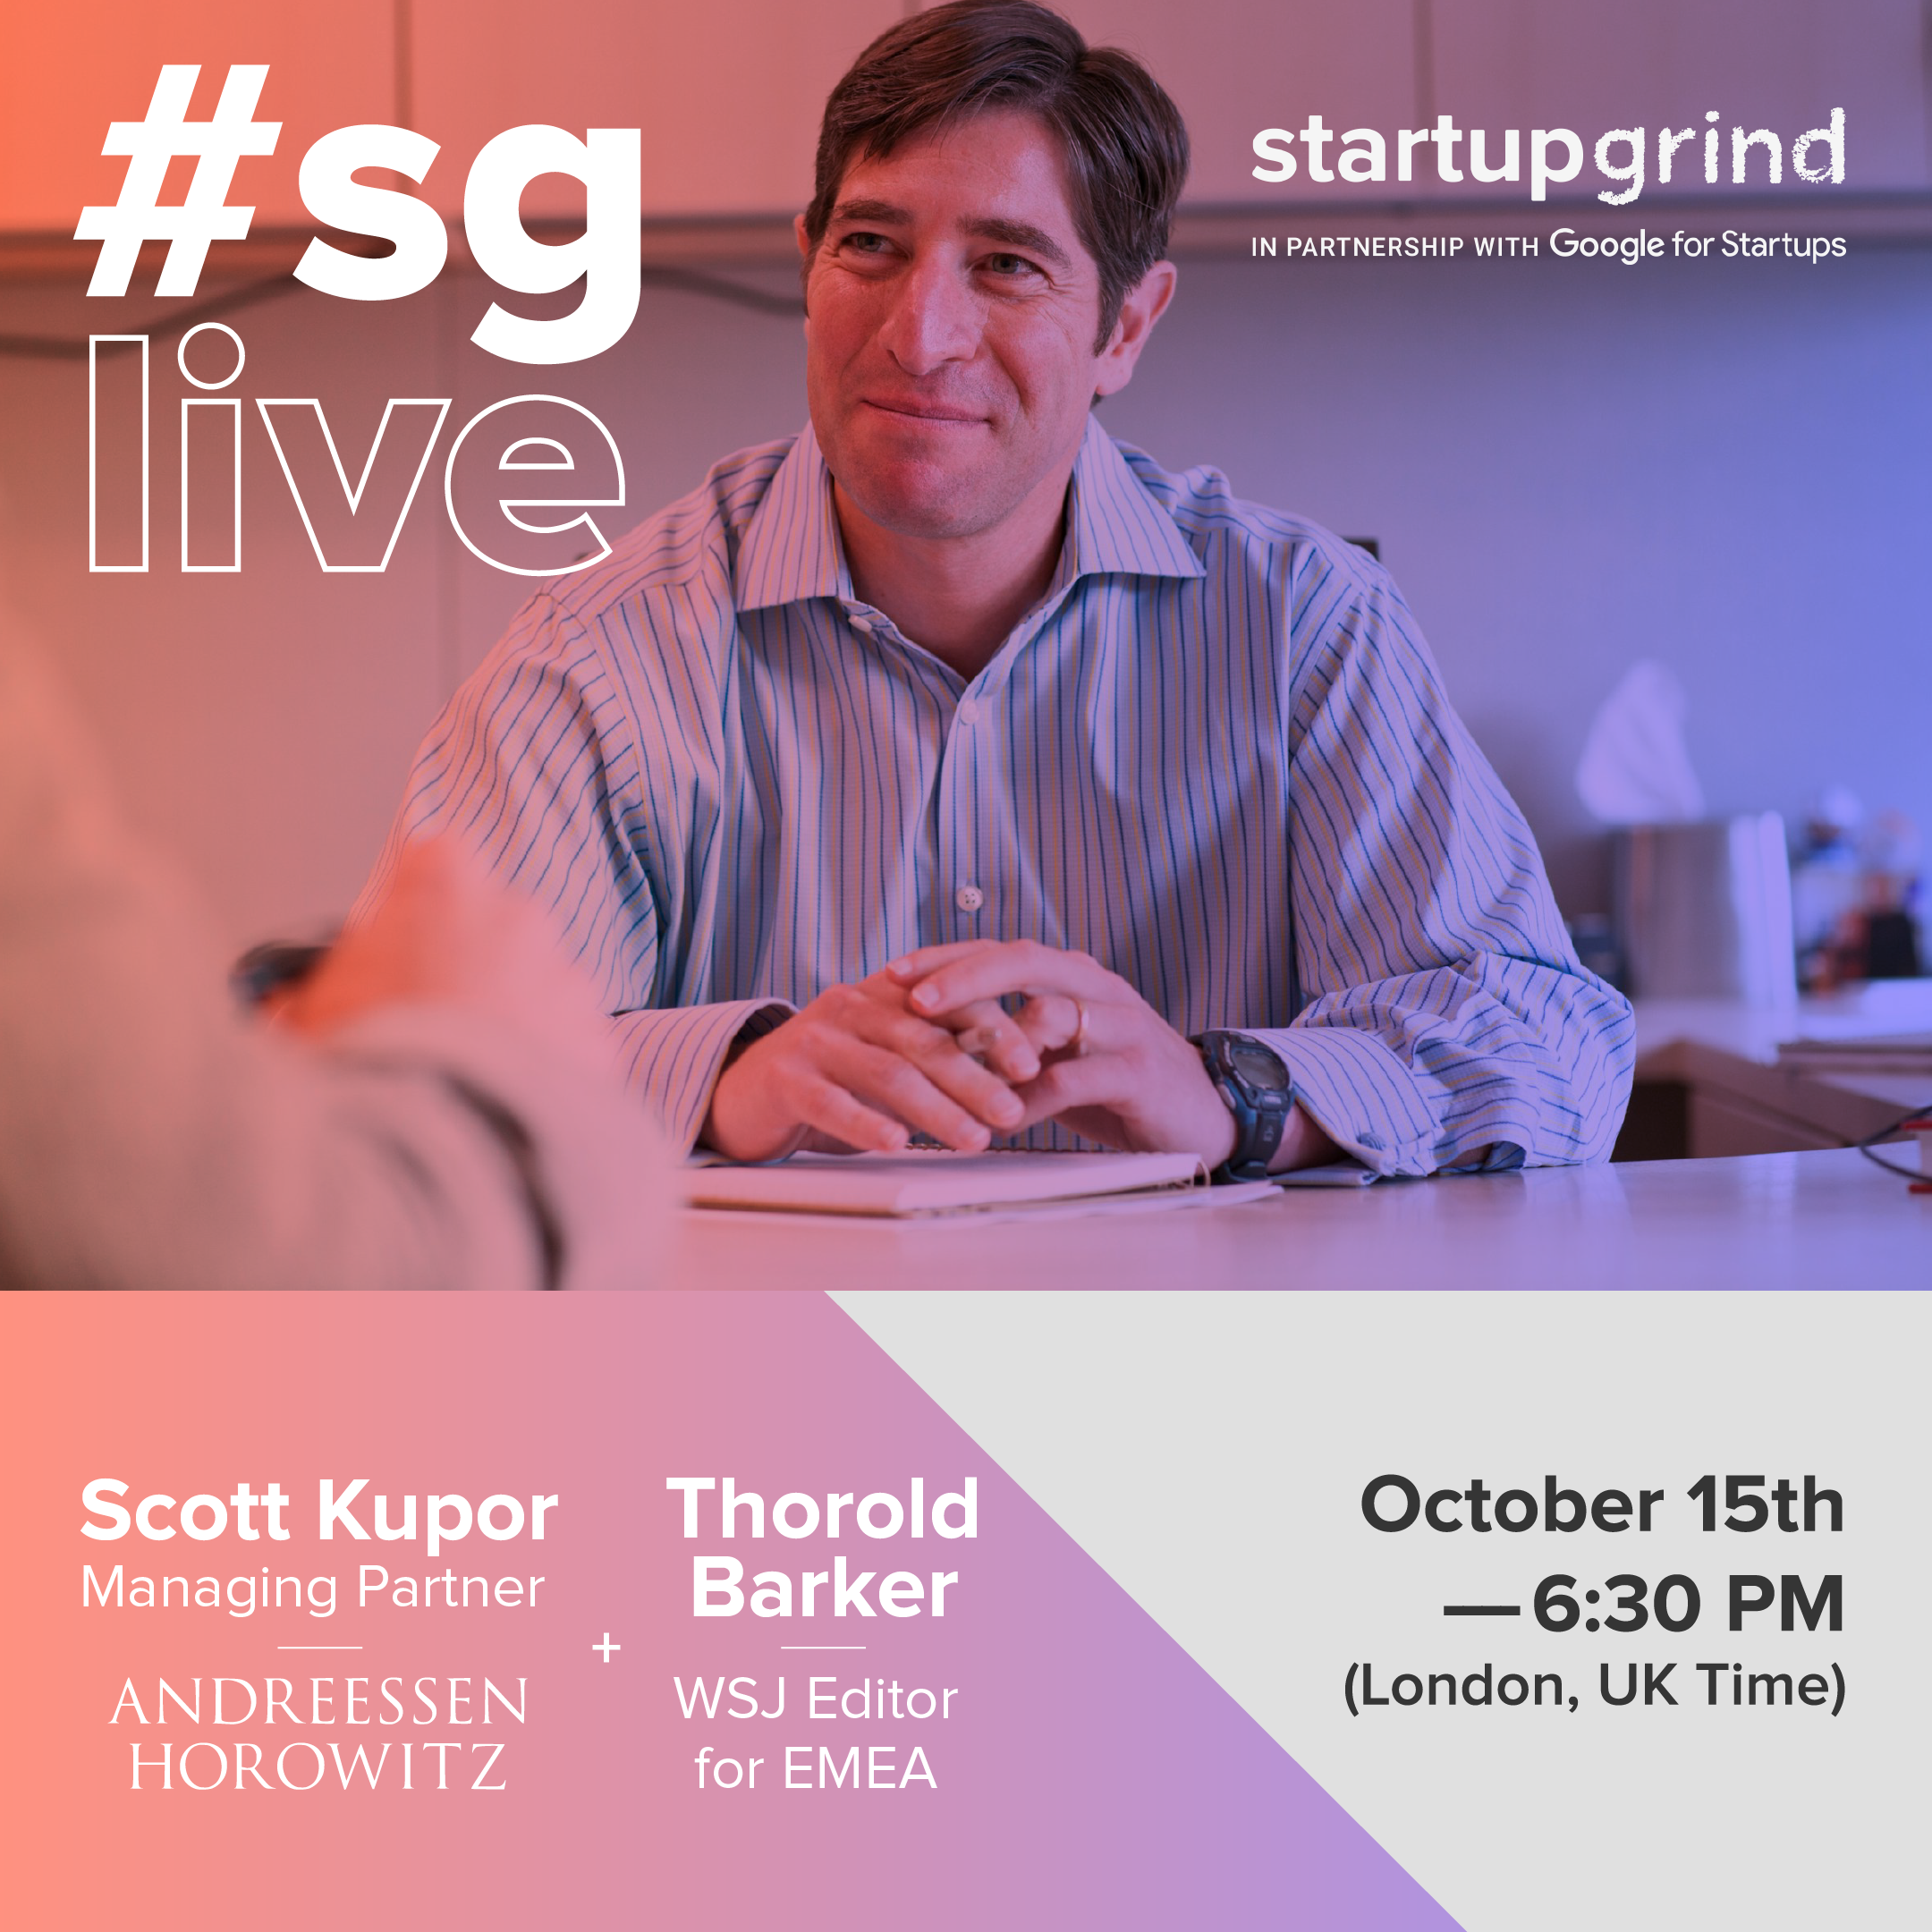 LIVE: Secrets of Sand Hill Road by Managing Partner of Andreessen Horowitz: Scott Kupor